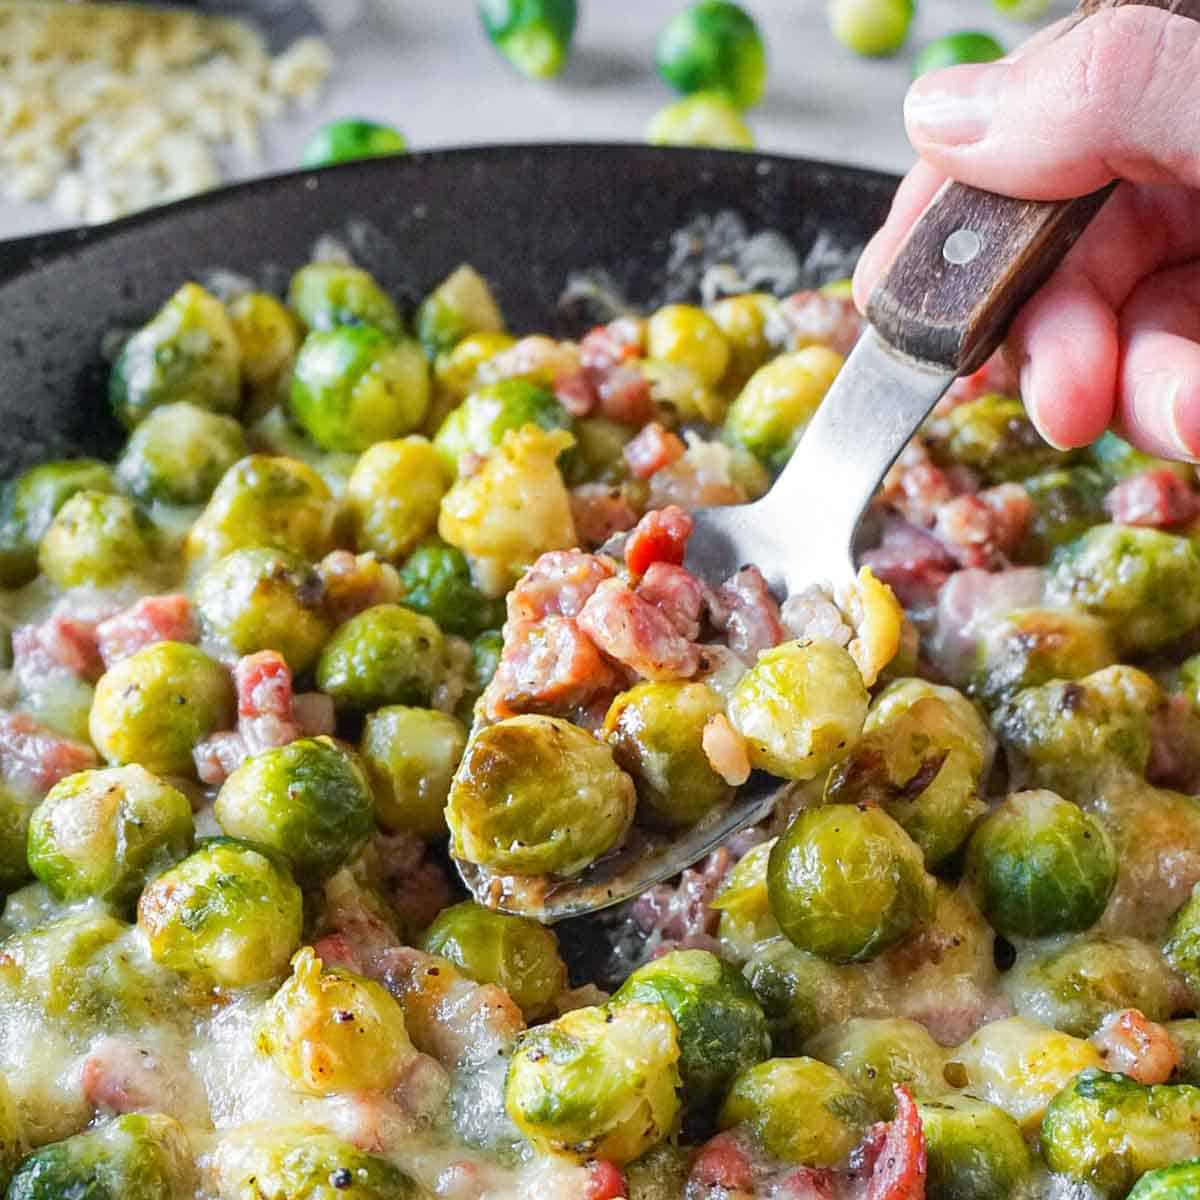 Cast iron skillet full of cheesy brussels sprouts with bacon with a silver spoon digging in.